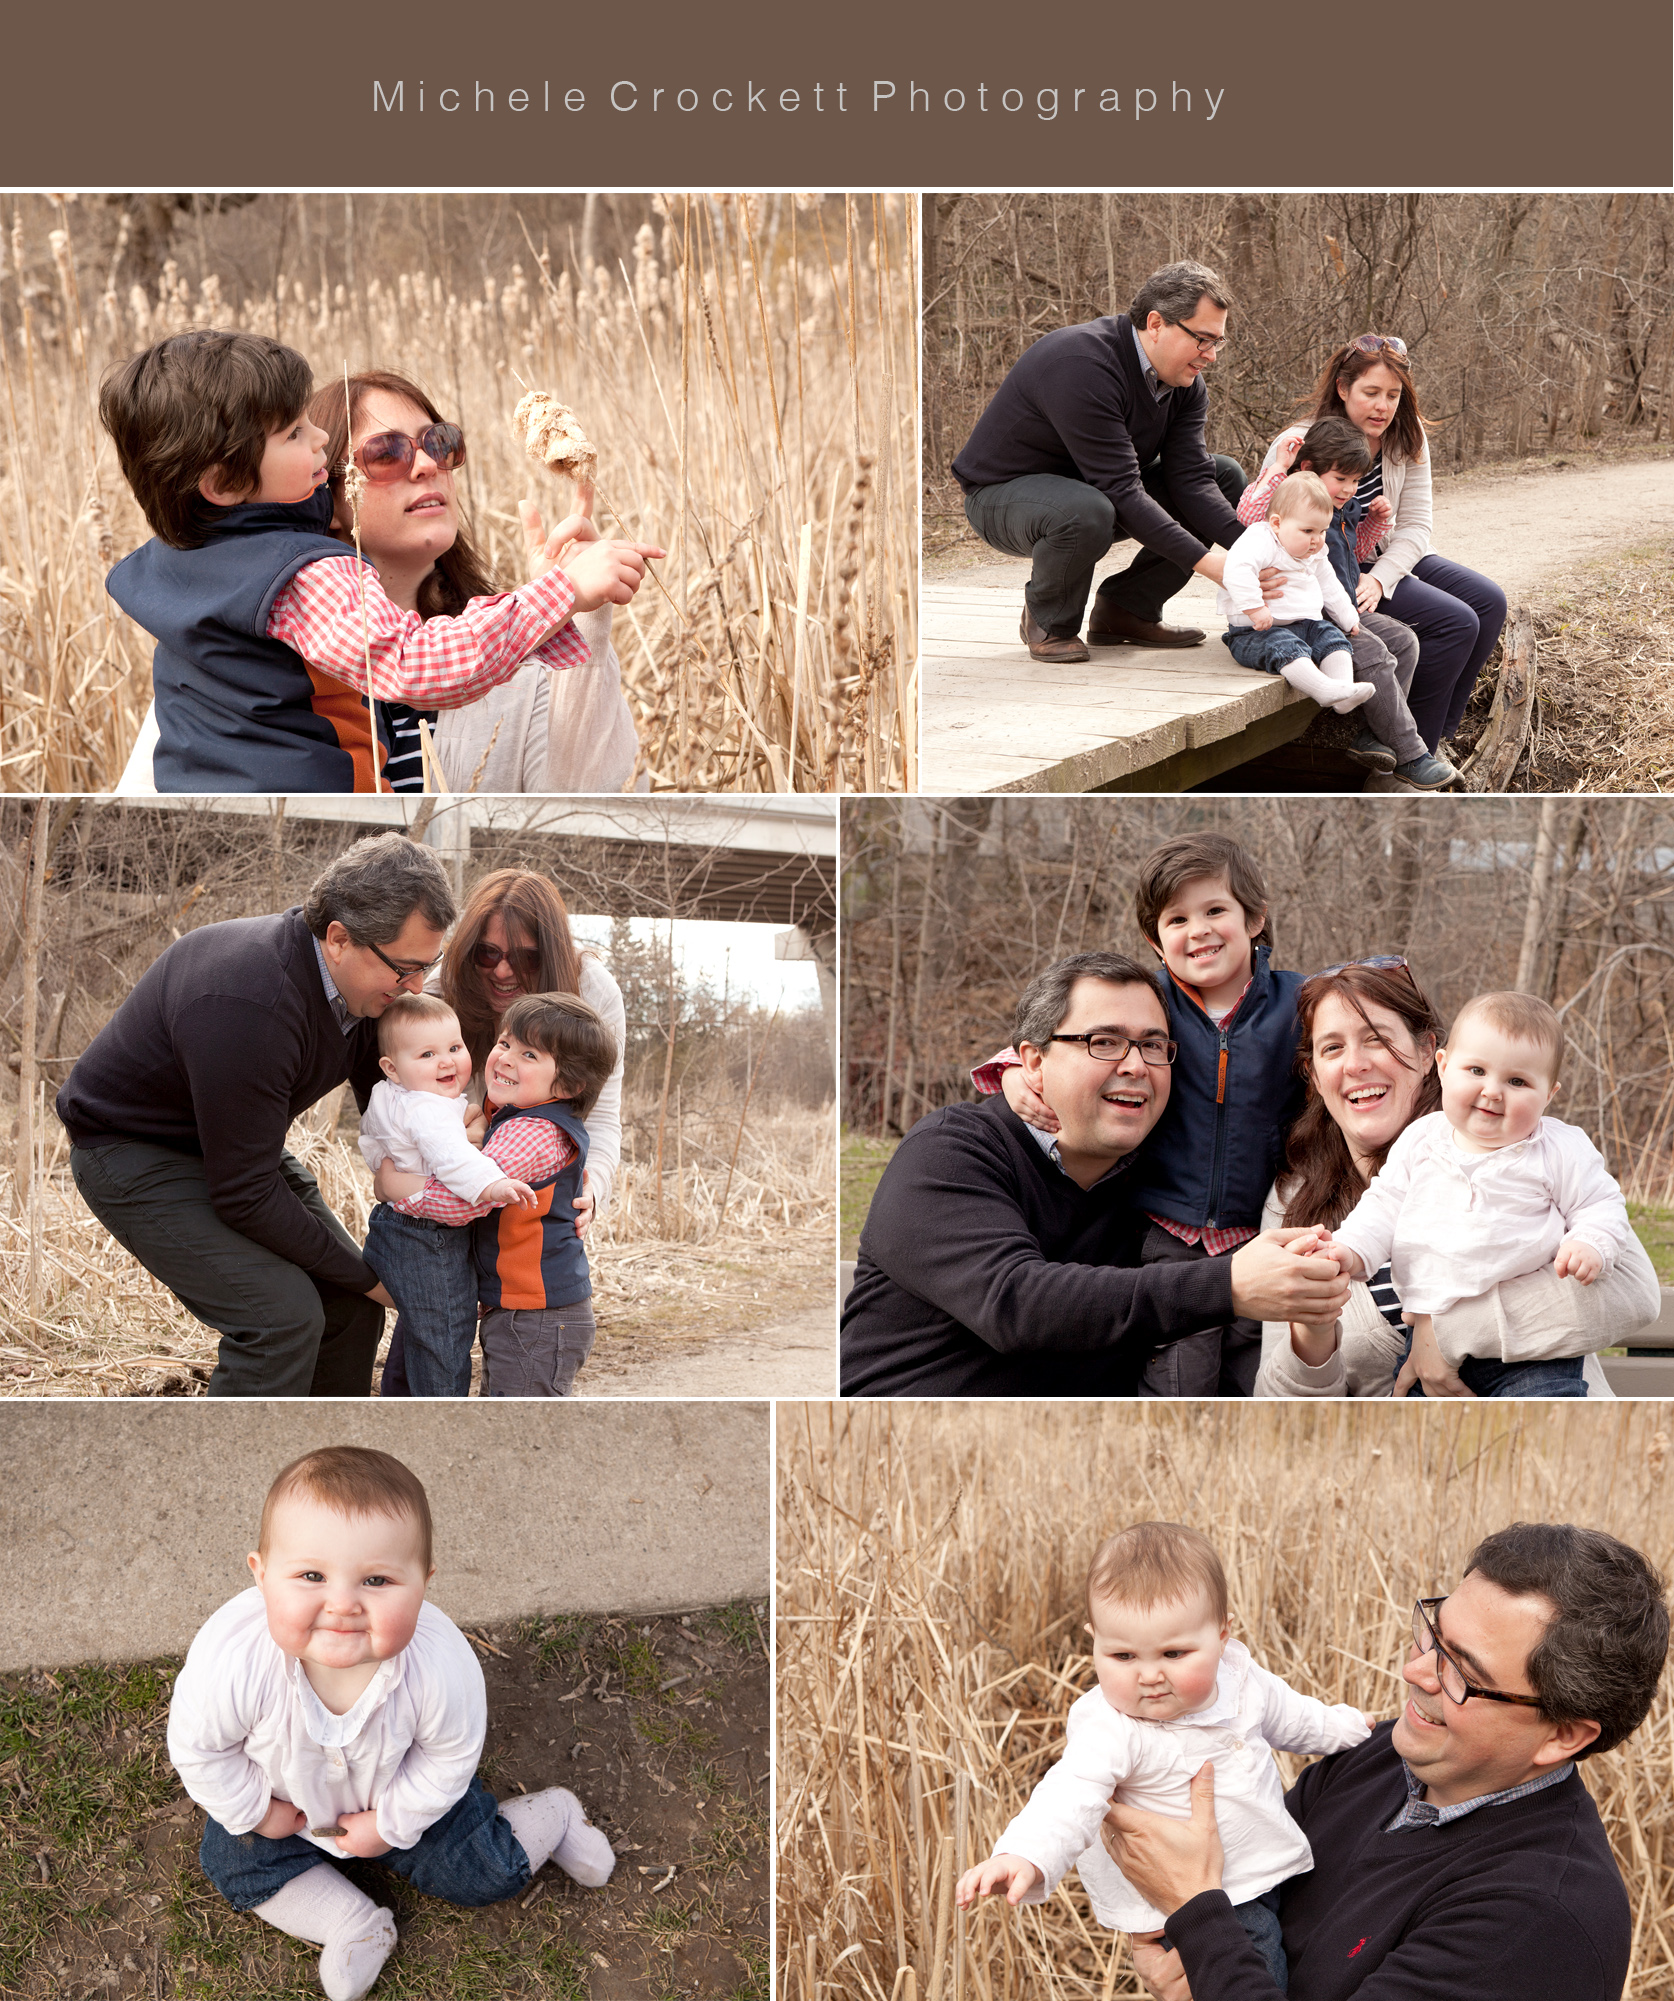 FIRST FAMILY PHOTO SHOOT THIS SPRING